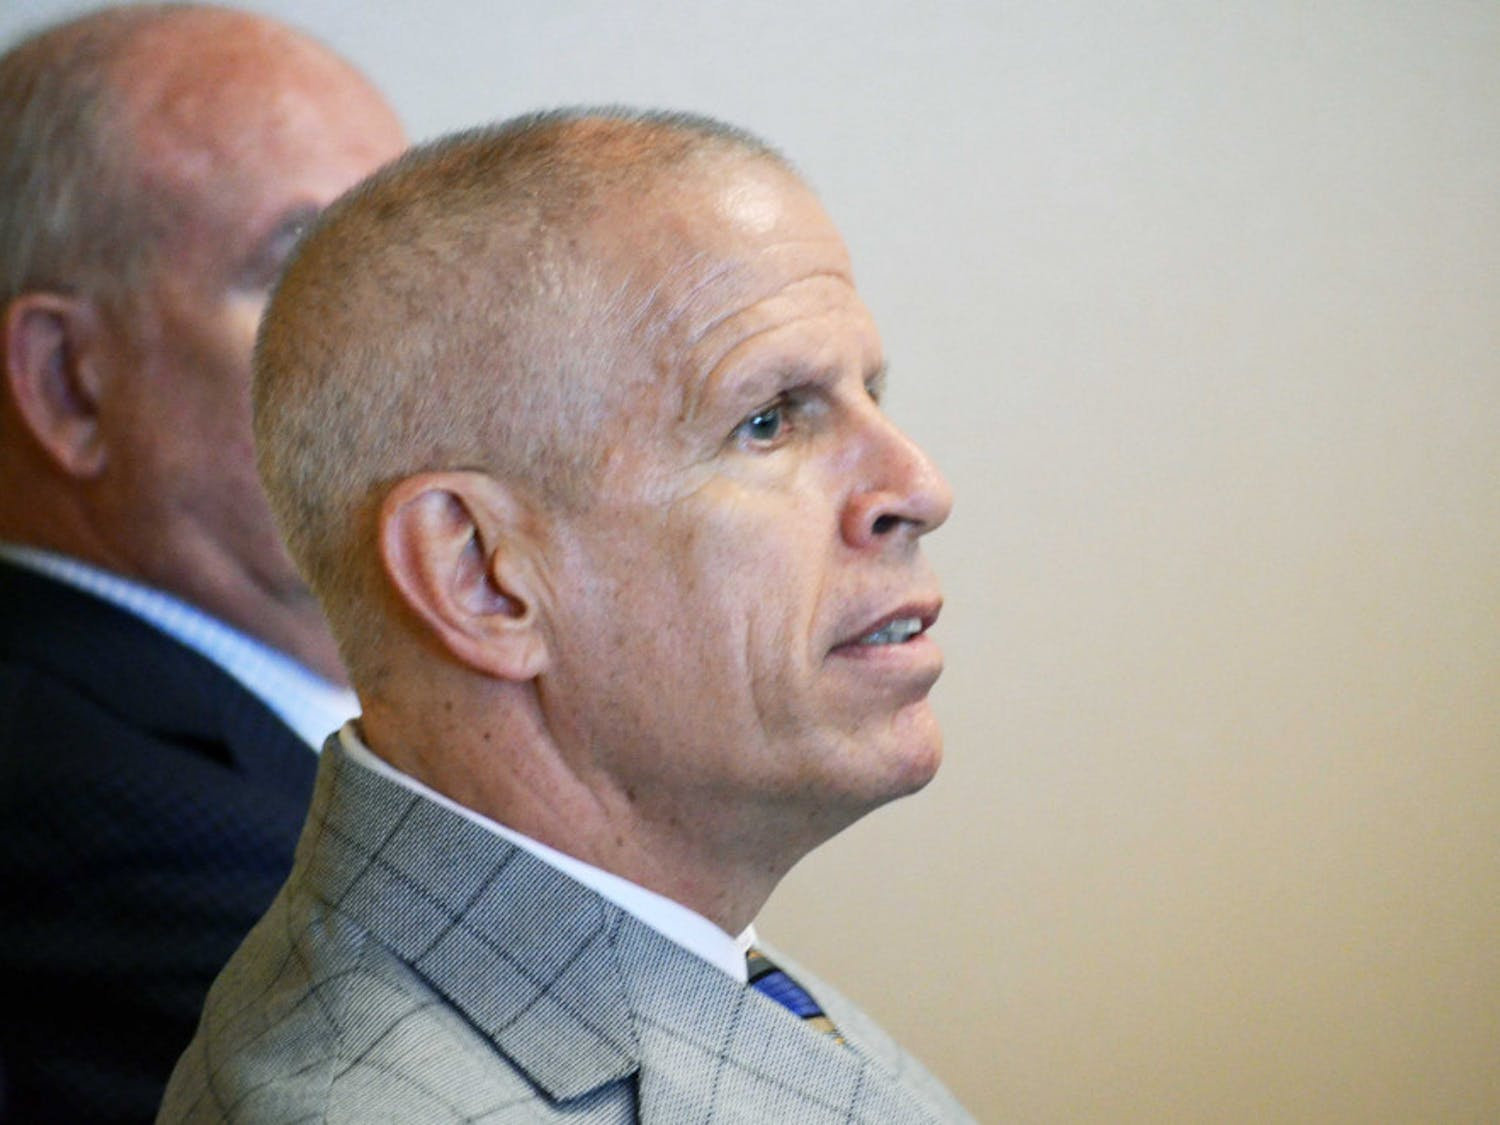 UF athletics director Jeremy Foley listens as Jim McElwain gives his press conference on Dec. 6, 2014, at Ben Hill Griffin Stadium.